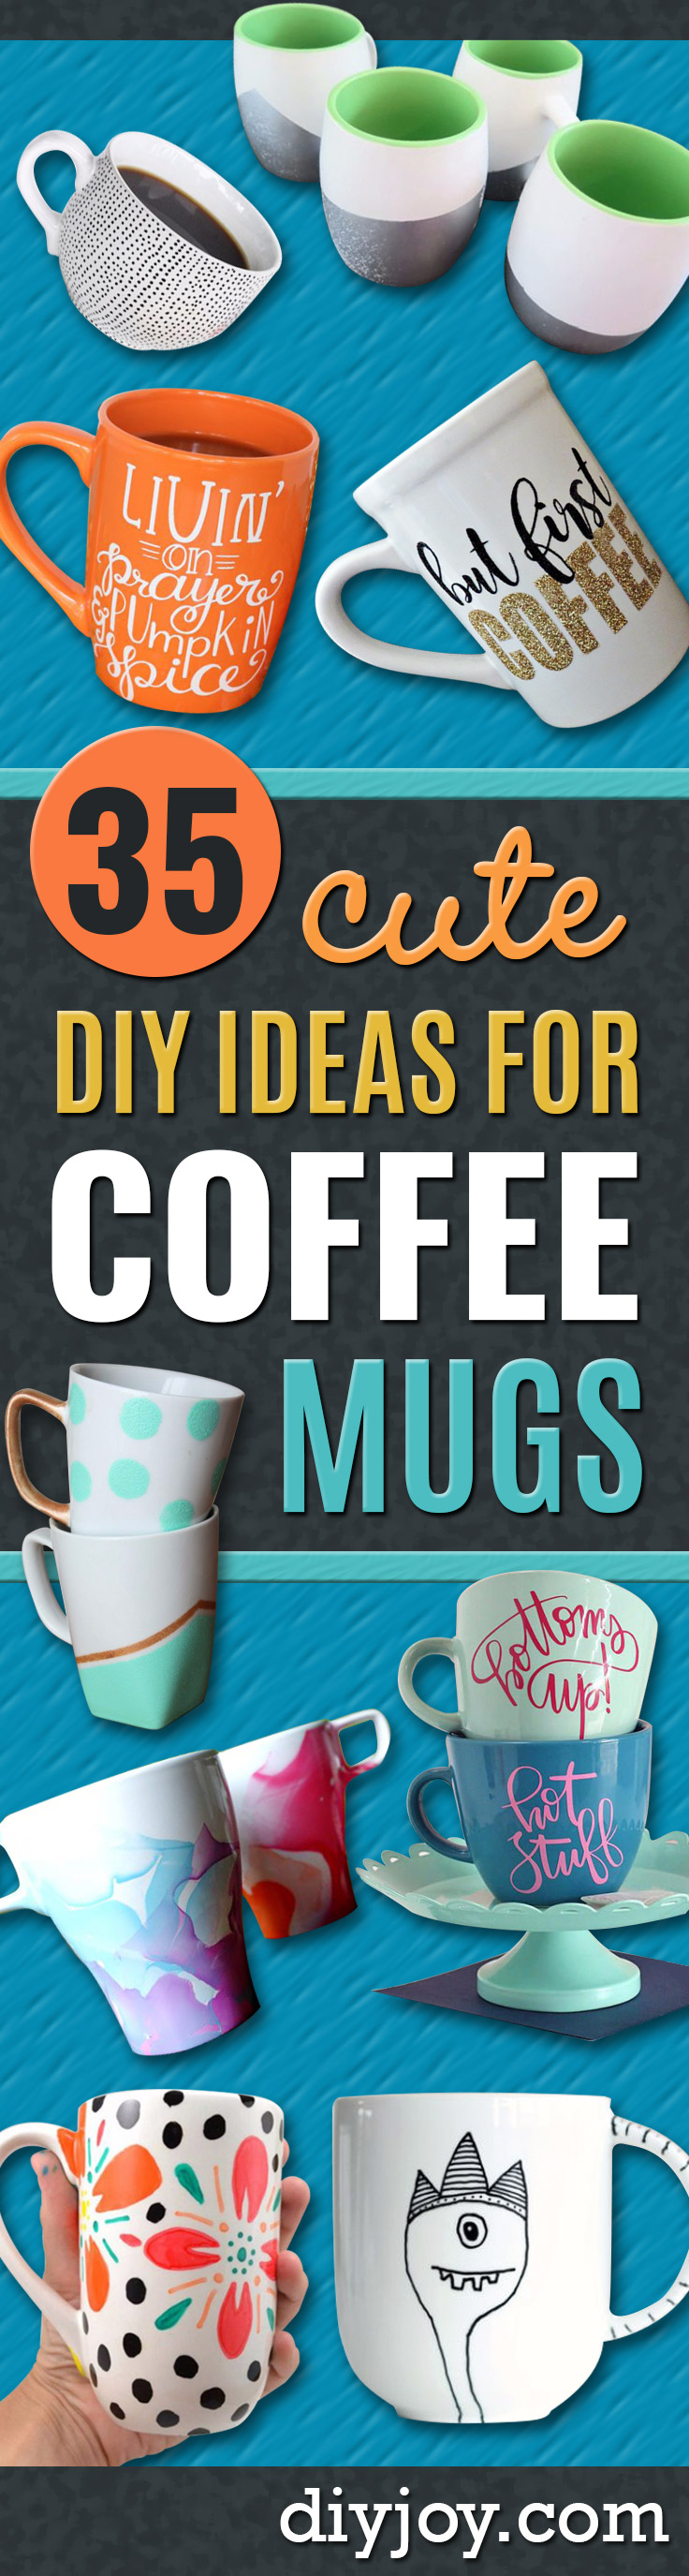 DIY Coffee Mugs - Easy Coffee Mug Ideas for Homemade Gifts and Crafts - Decorate Your Coffee Cups and Tumblers With These Cool Art Ideas - Glitter, Paint, Sharpie Craft, Nail Polish Water Marble and Teen Projects